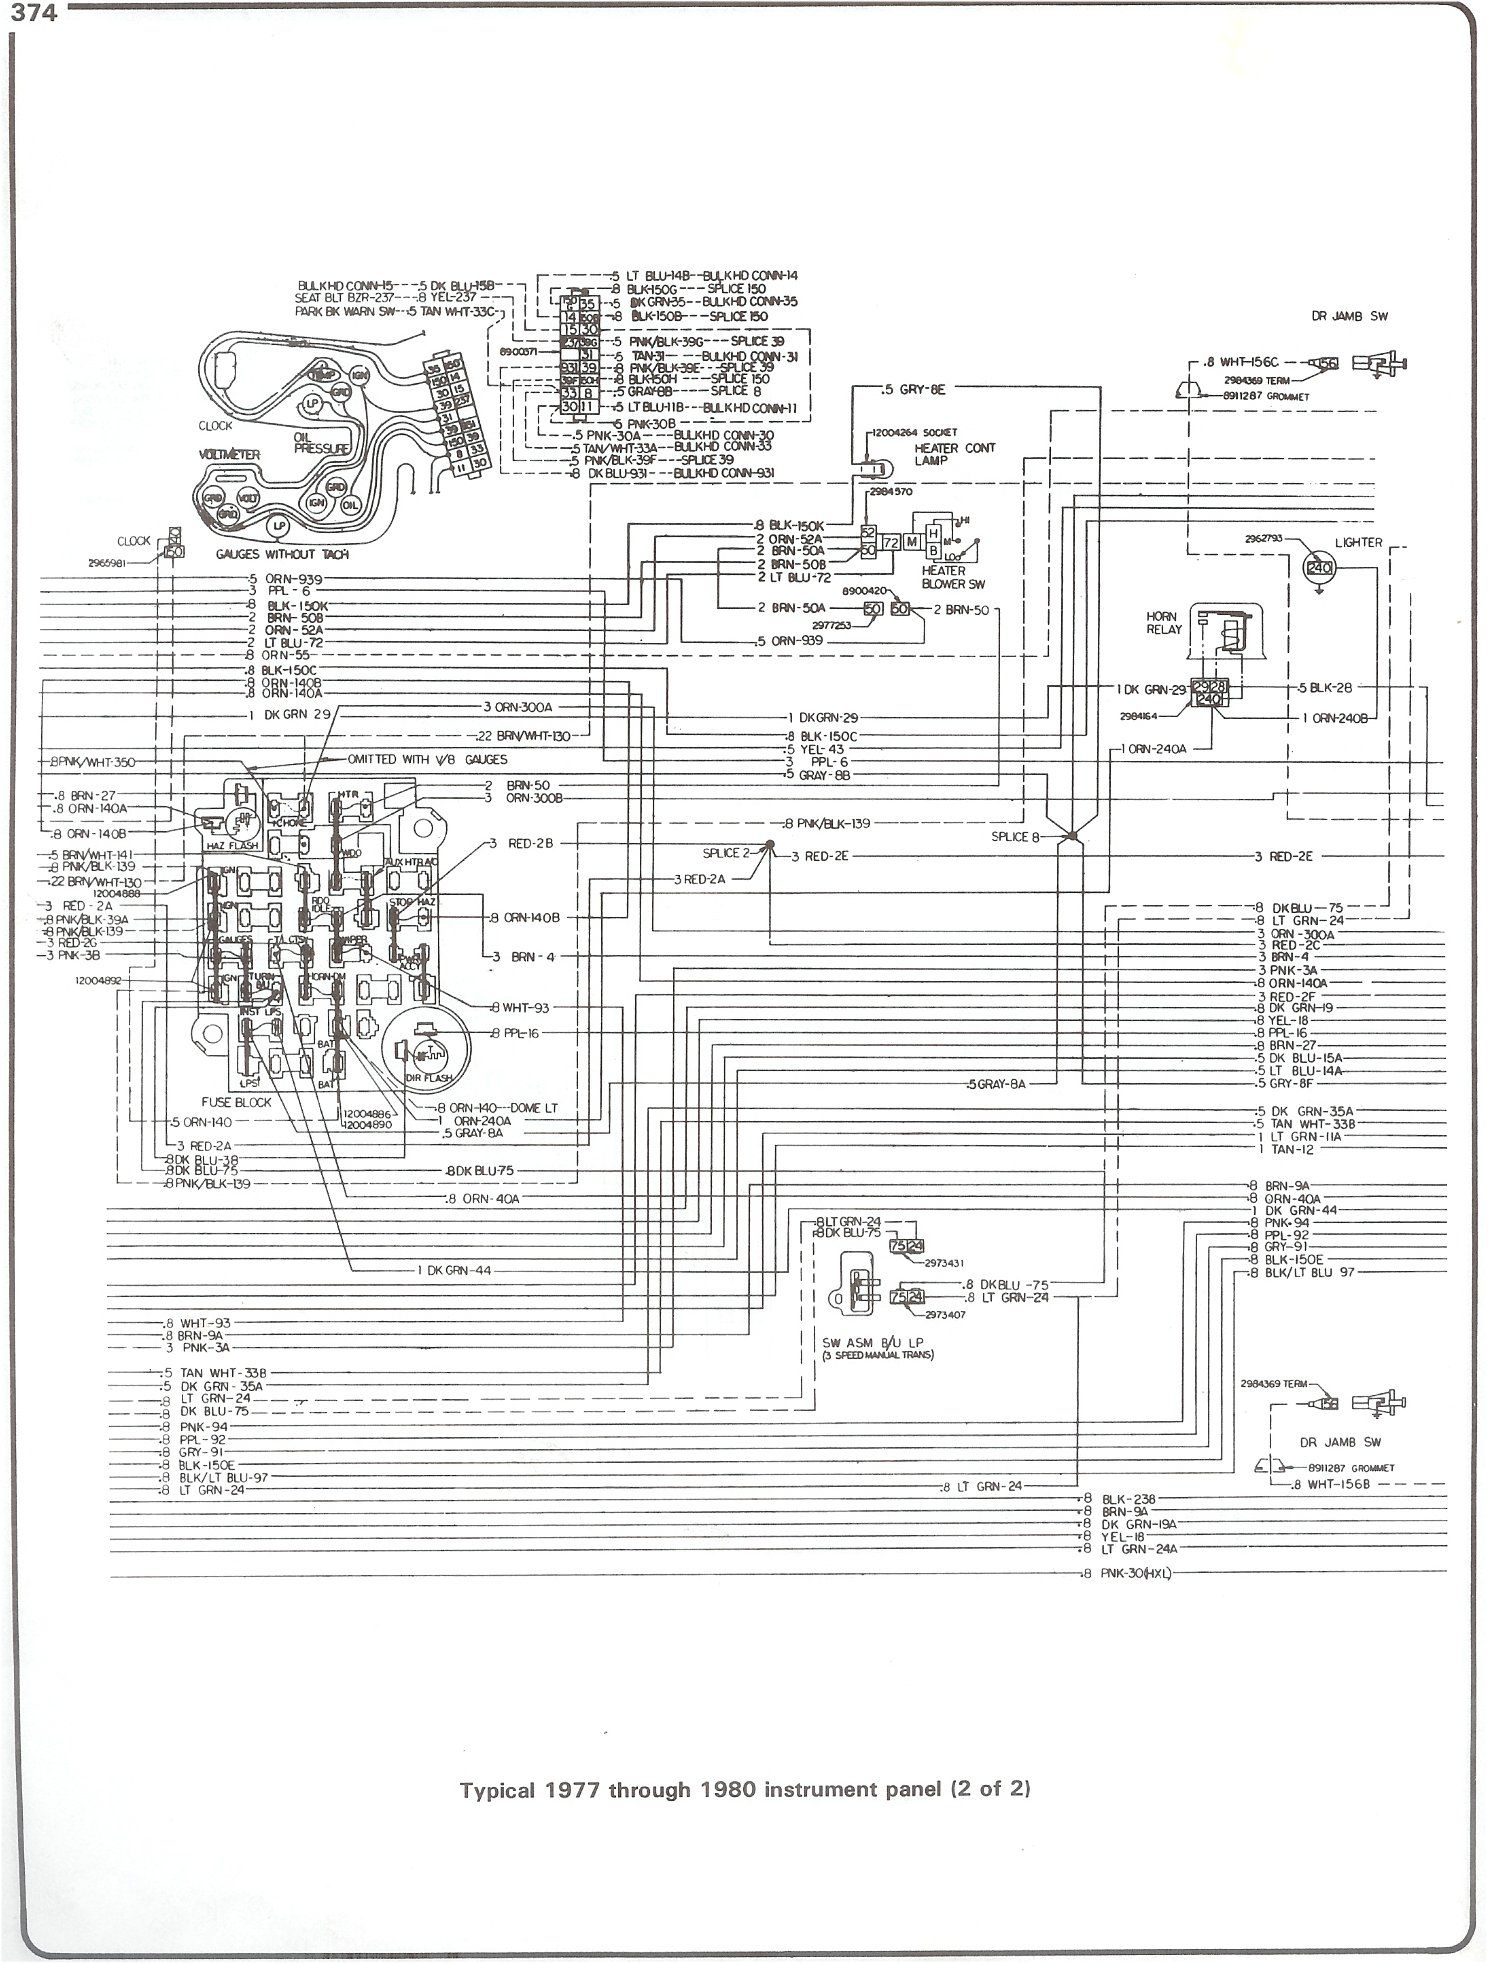 medium resolution of instrument panel of 1981 chevy c10 fuse box wiring diagram with heater blower and fuse block or dimmer flasher wiring diagram